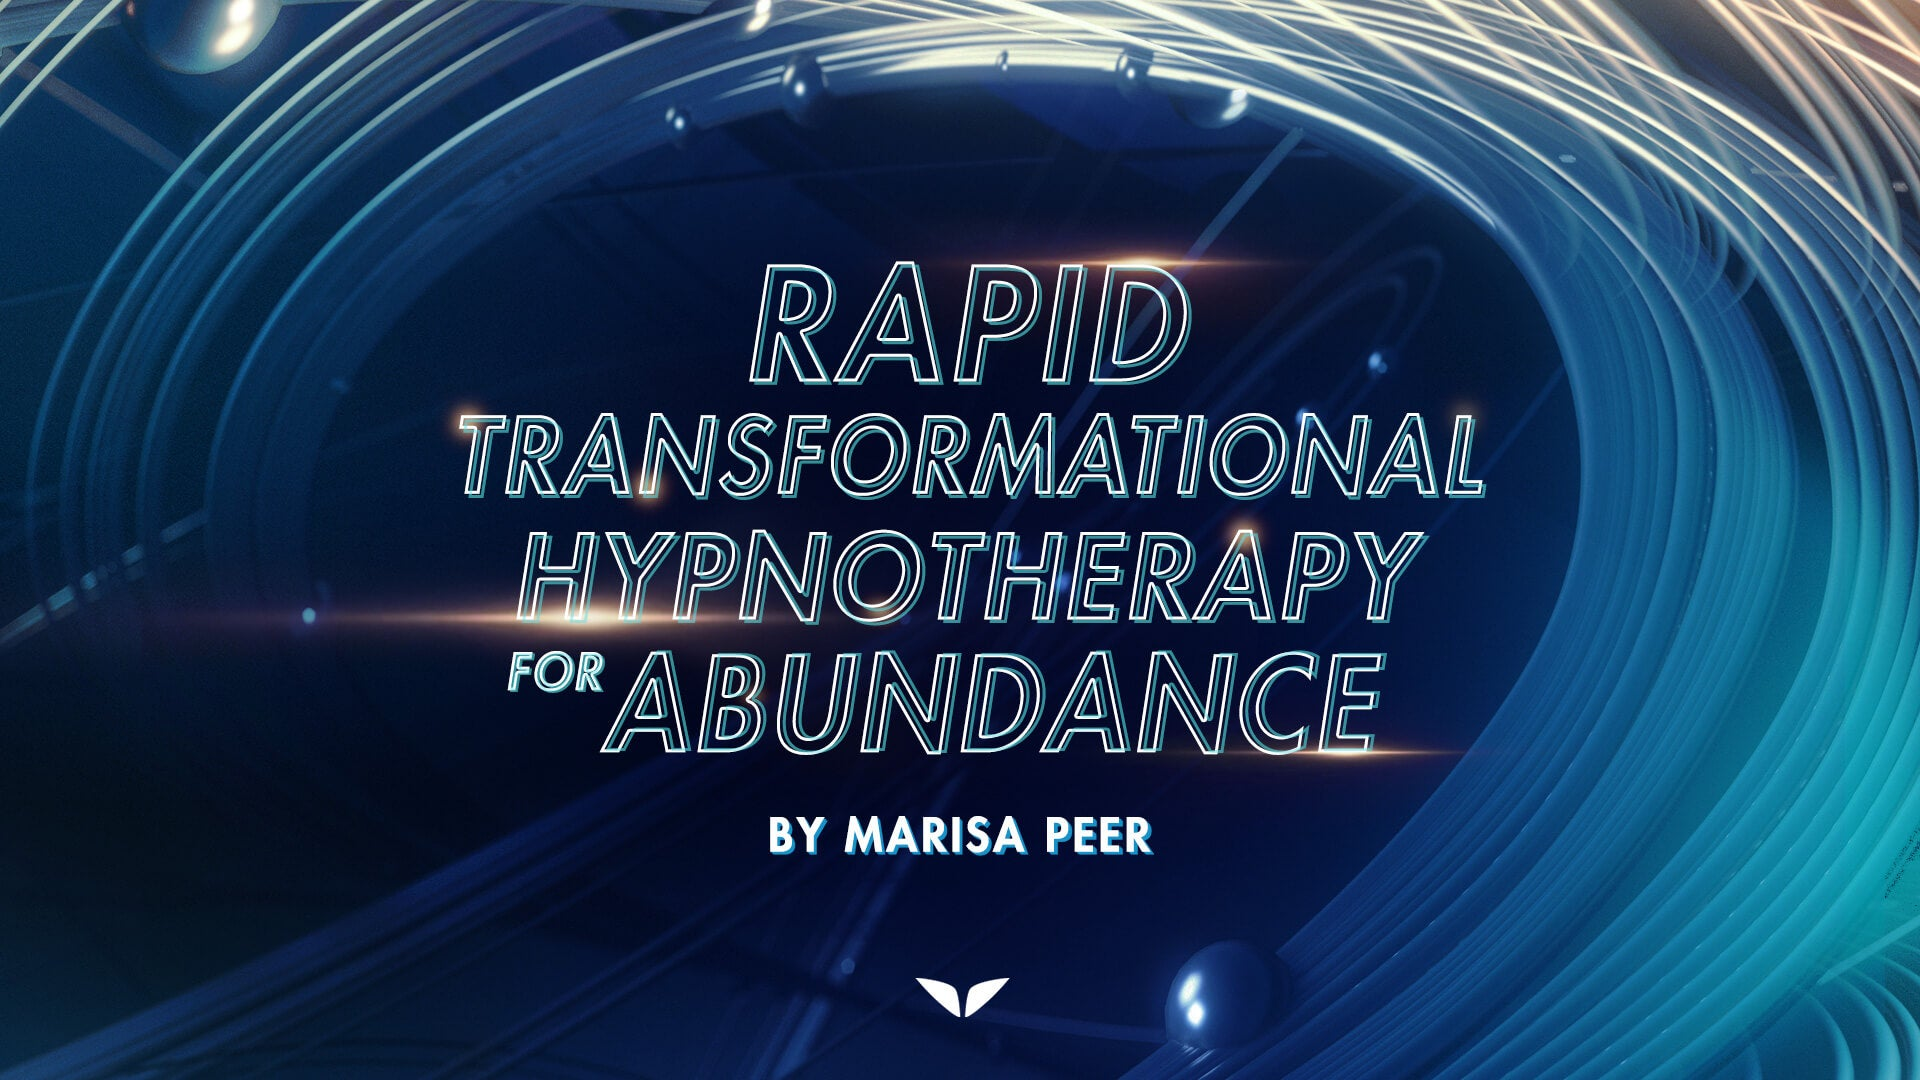 Rapid Transformational Hypnotherapy for Abundance